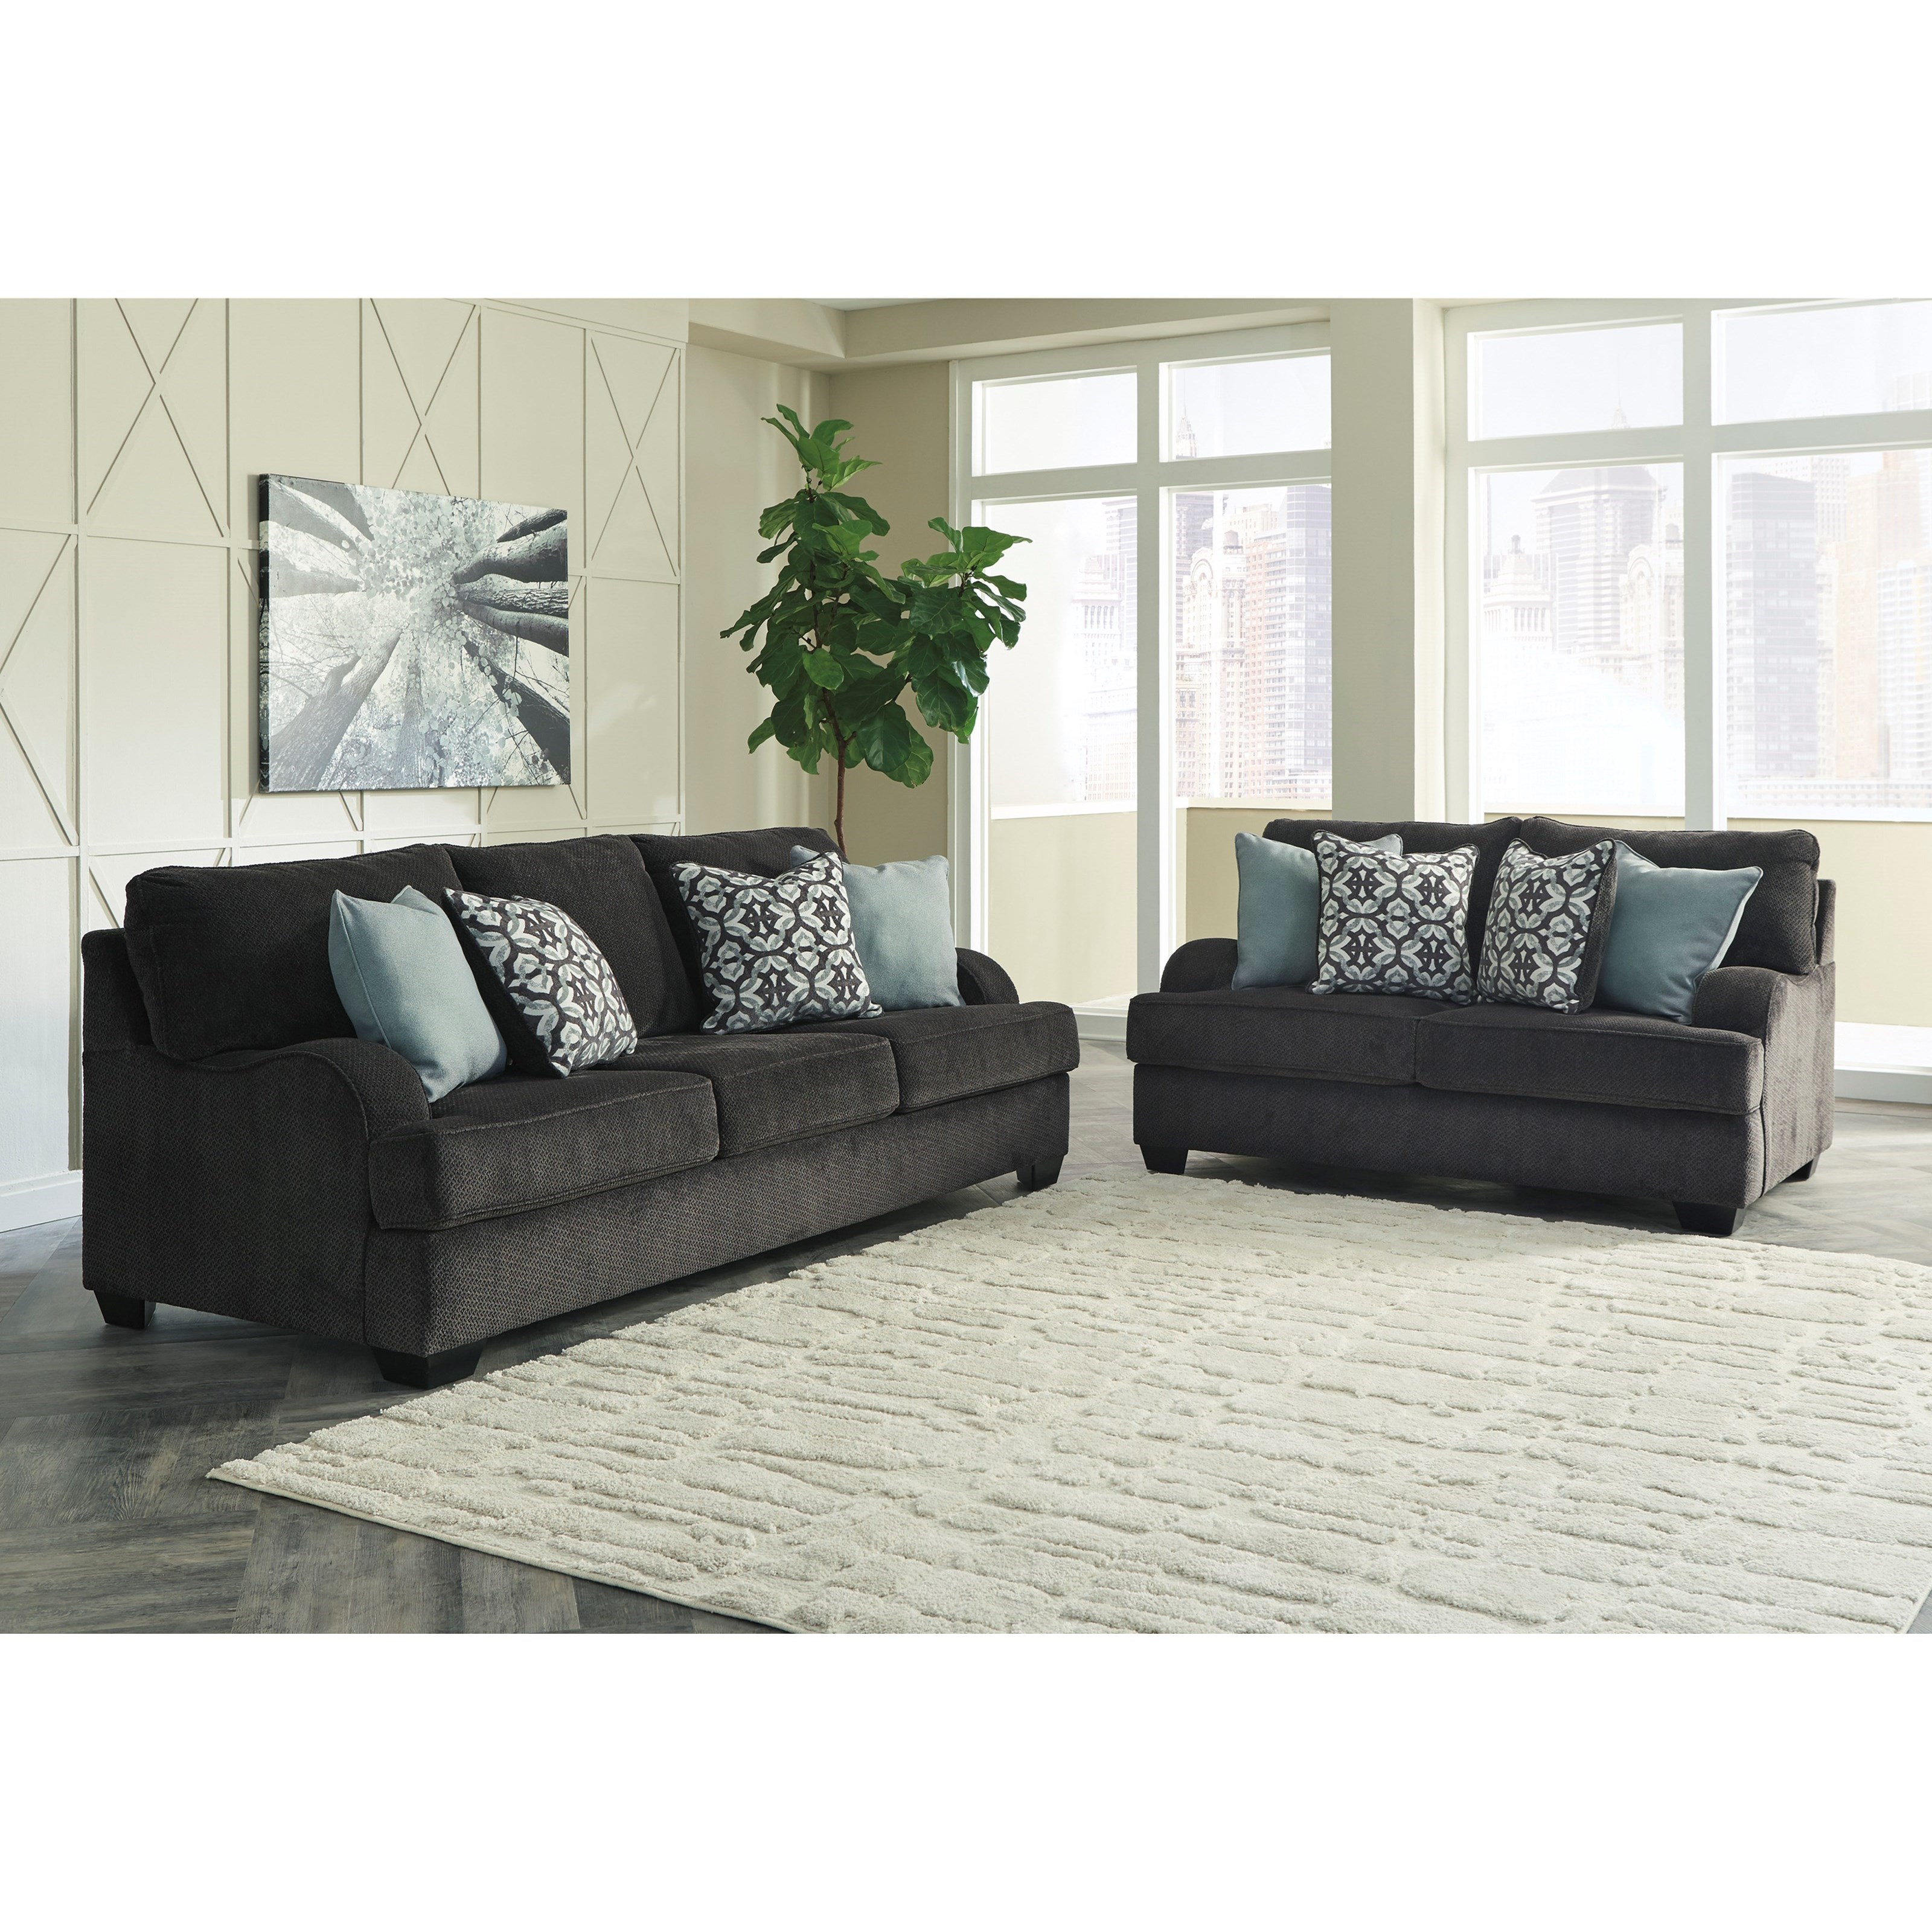 Benchcraft By Ashley Charenton Casual Sofa With English